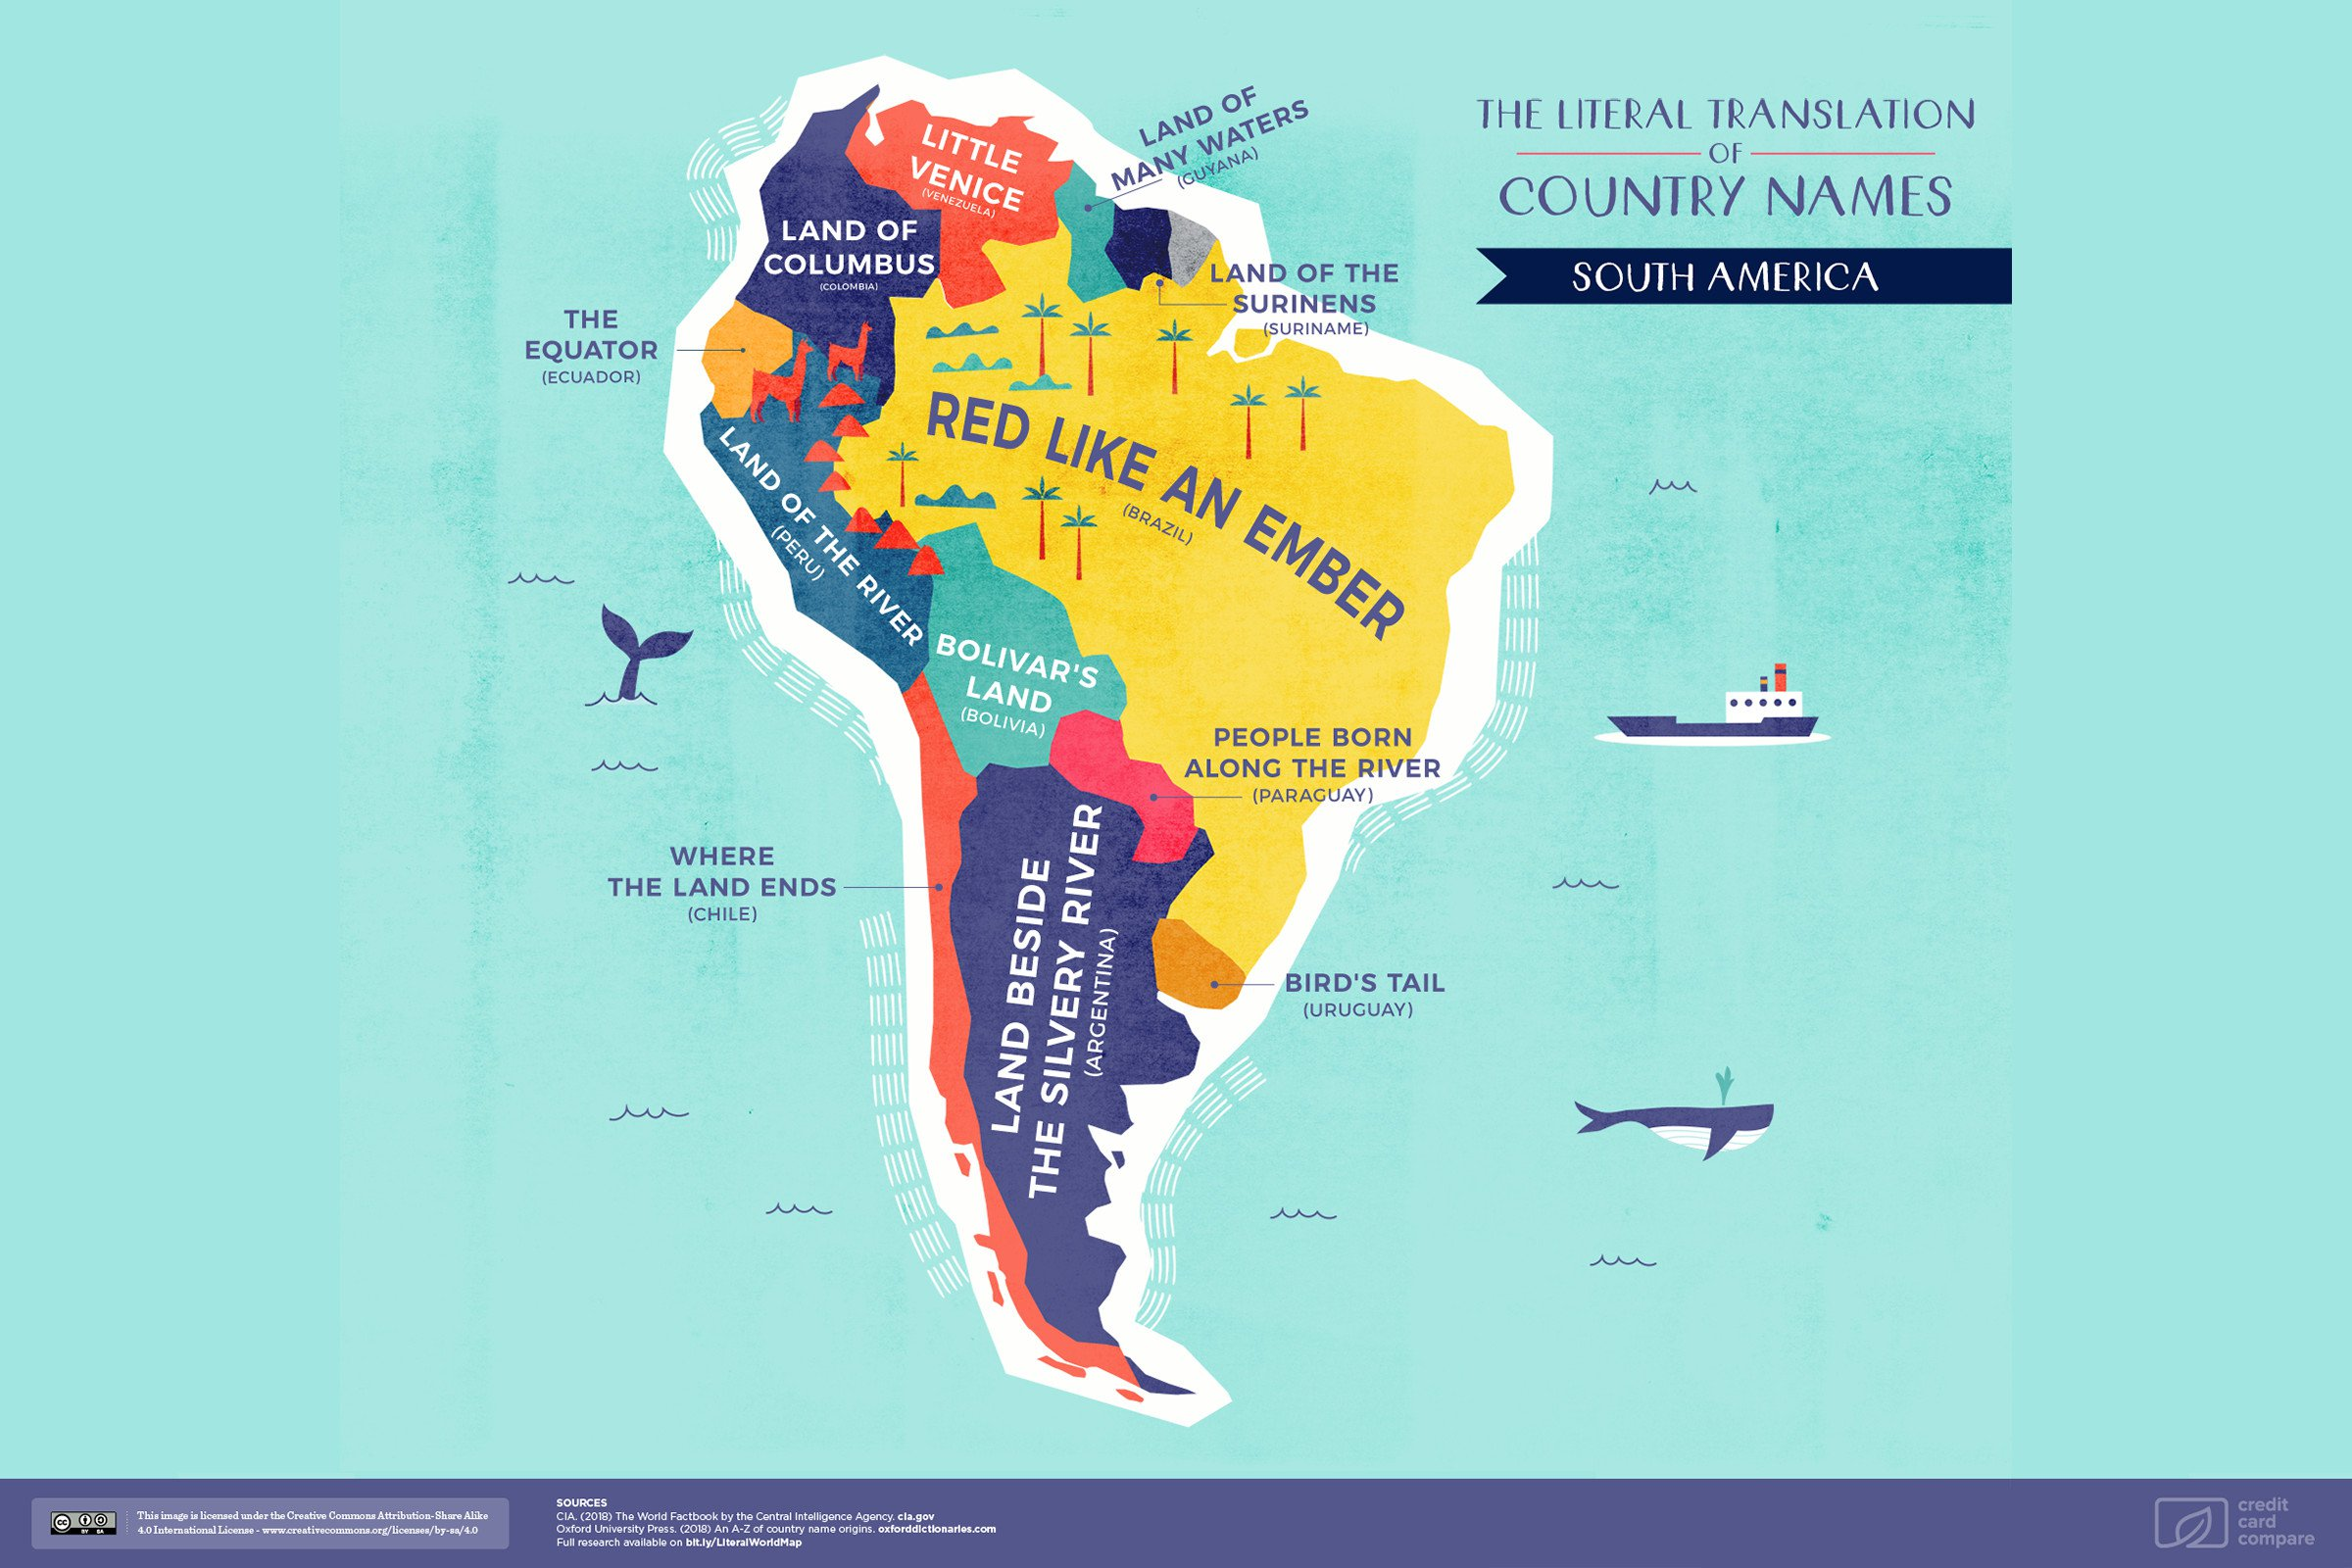 literal meaning of country names south america